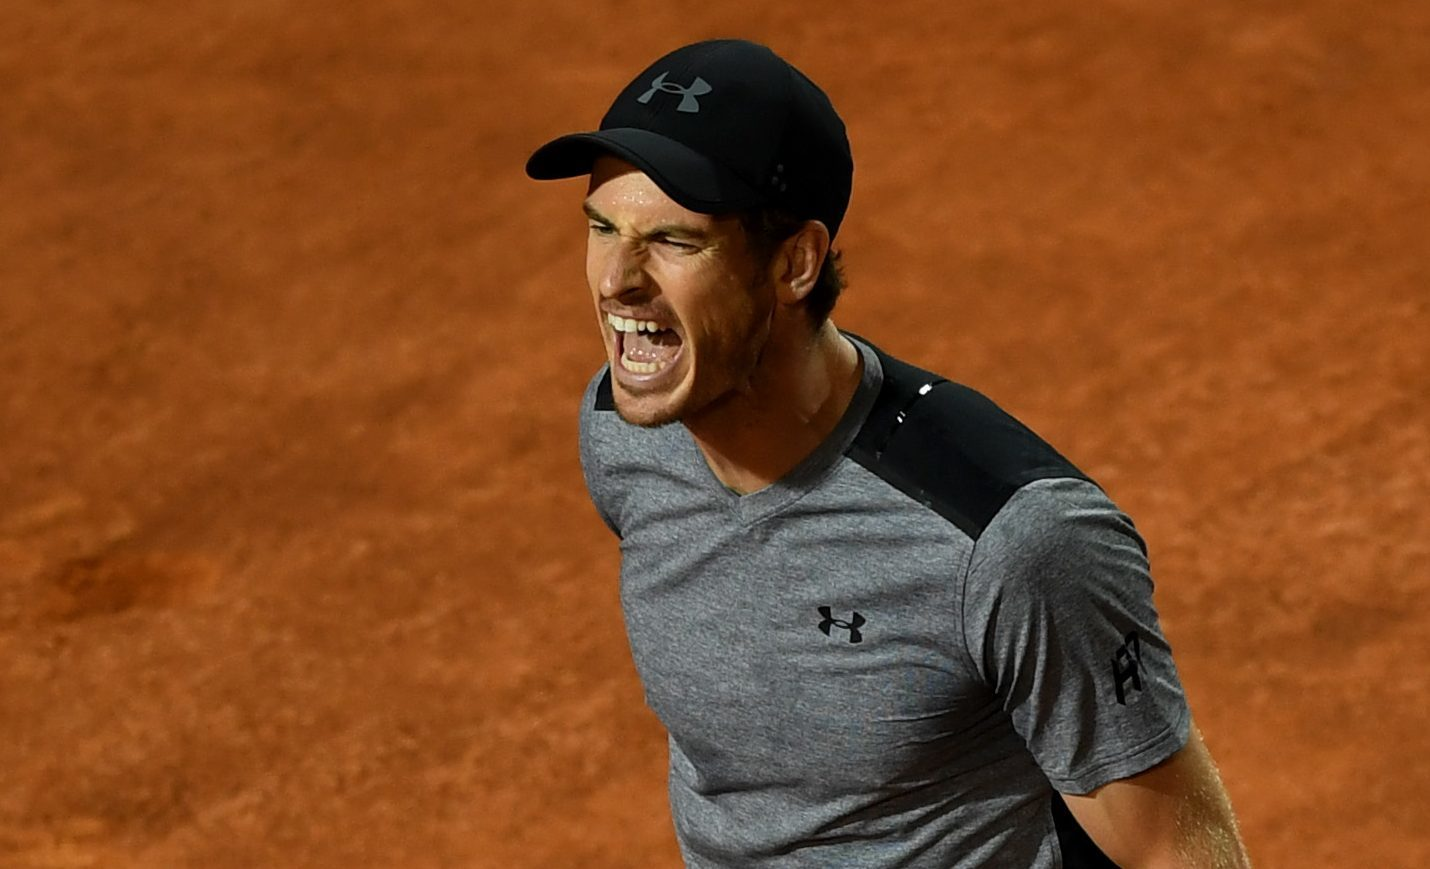 Andy Murray shows his frustration during his match against Fabio Fognini (Gareth Copley/Getty Images)